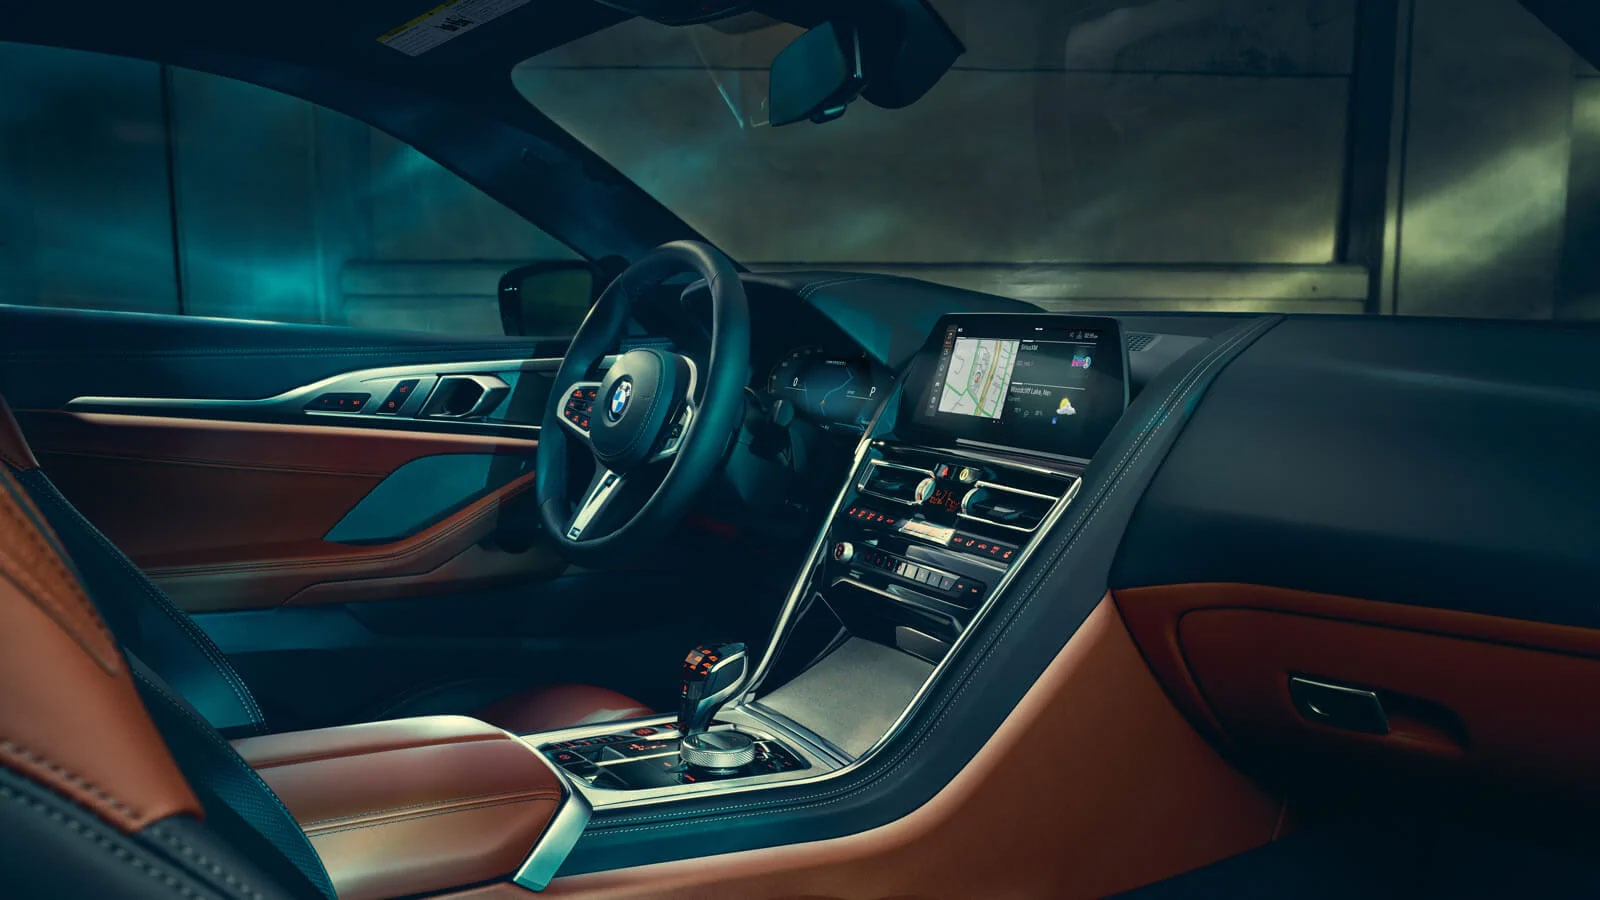 Interior view of the BMW 8 Series Coupe showcasing driver-oriented controls.